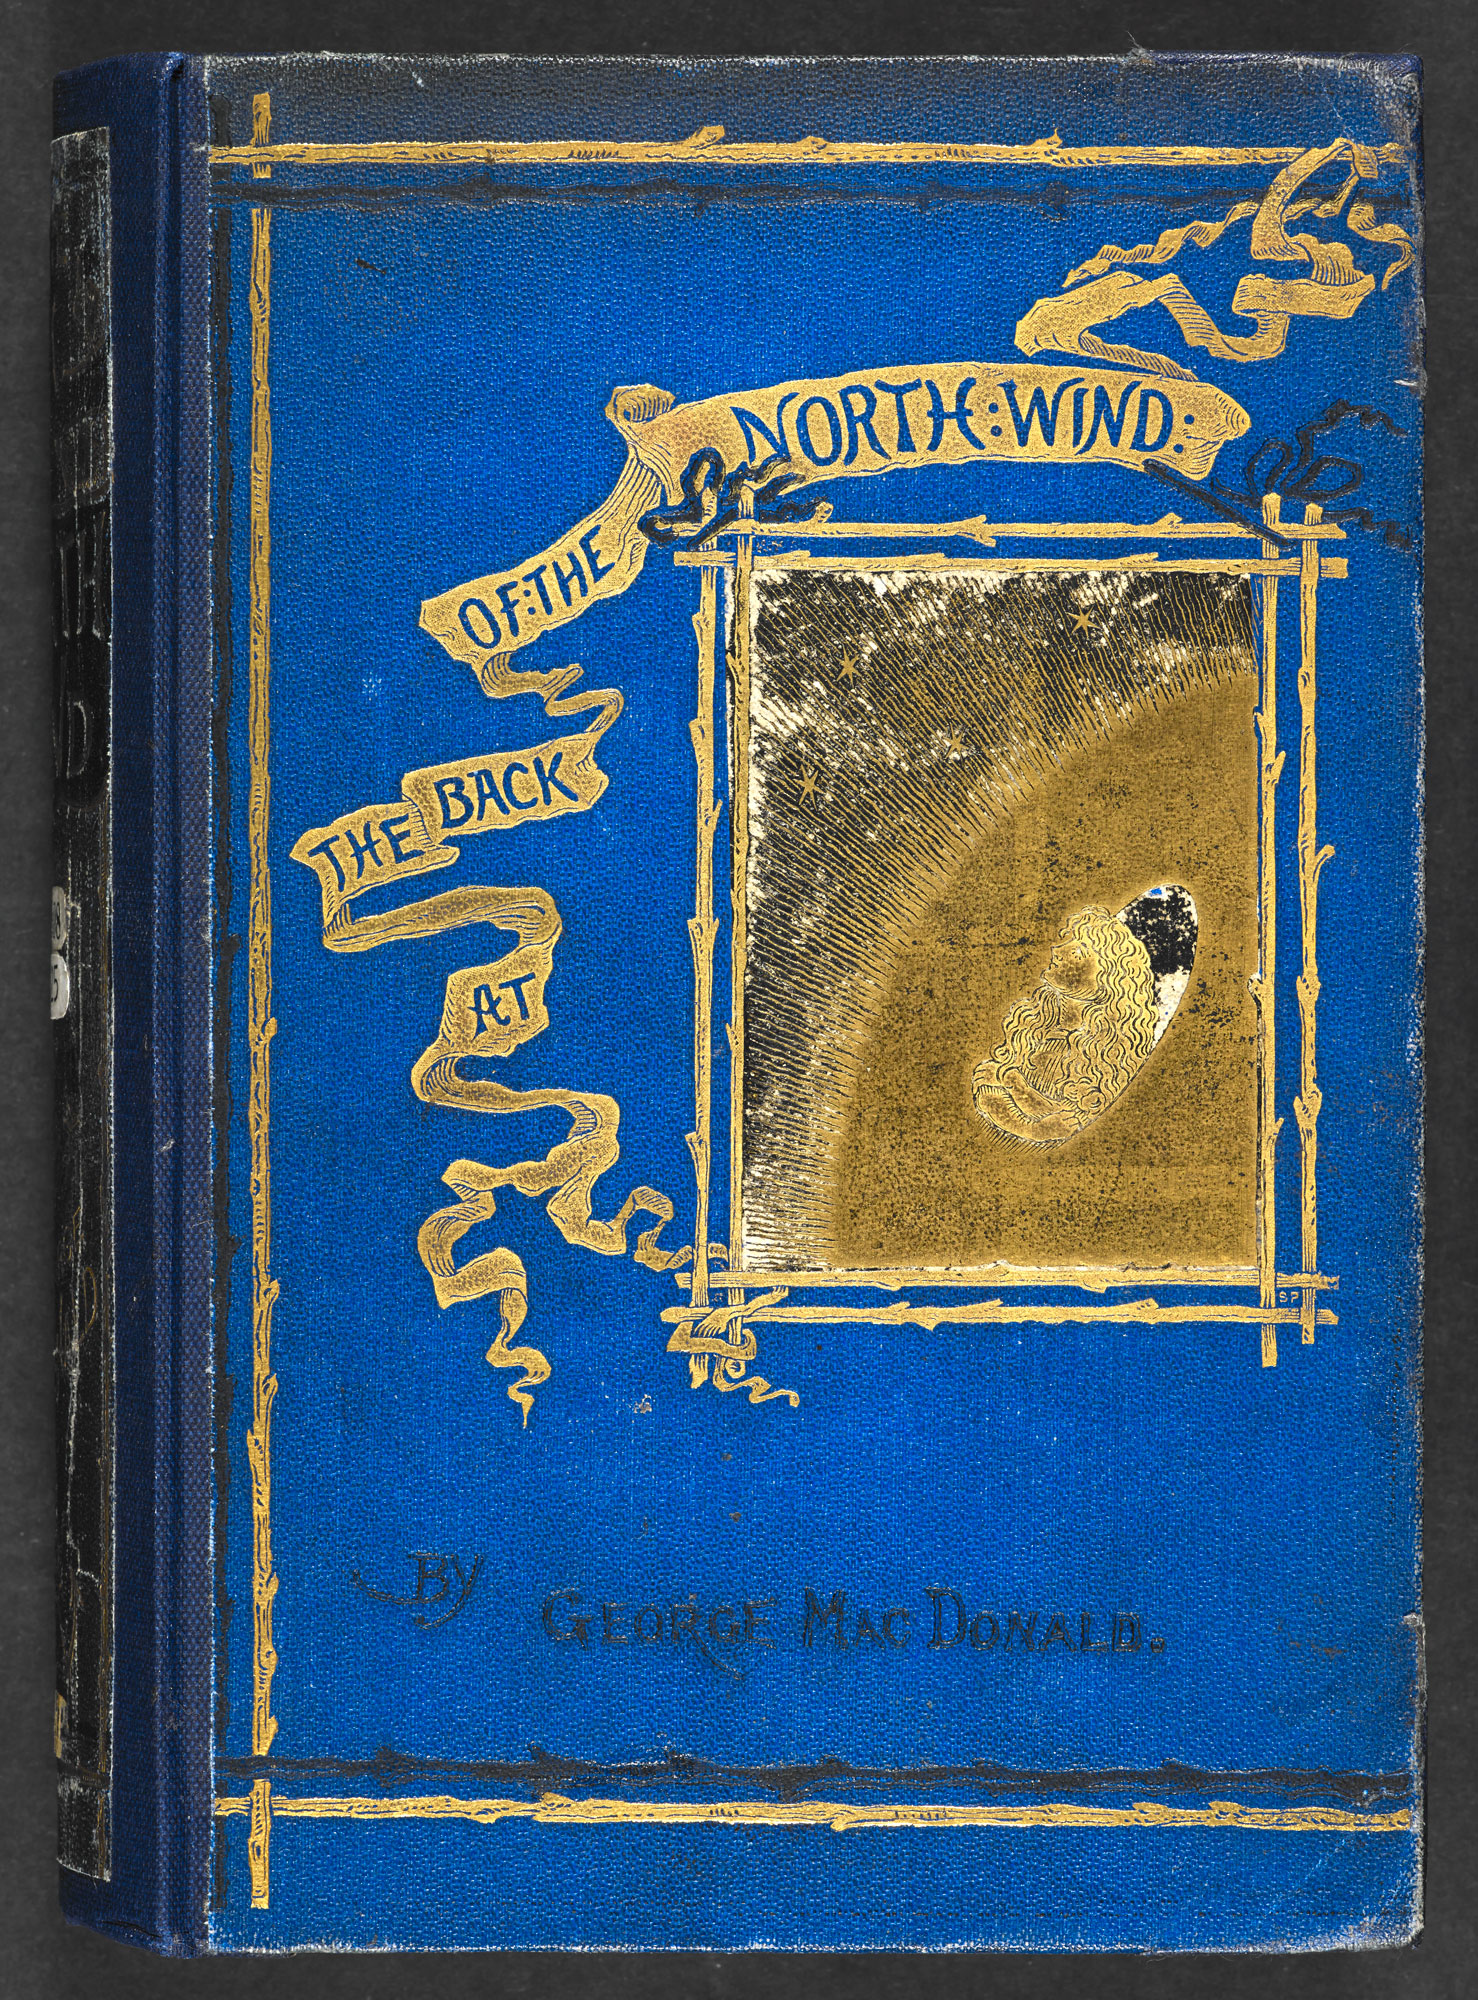 At the back of the North Wind [page: front cover]